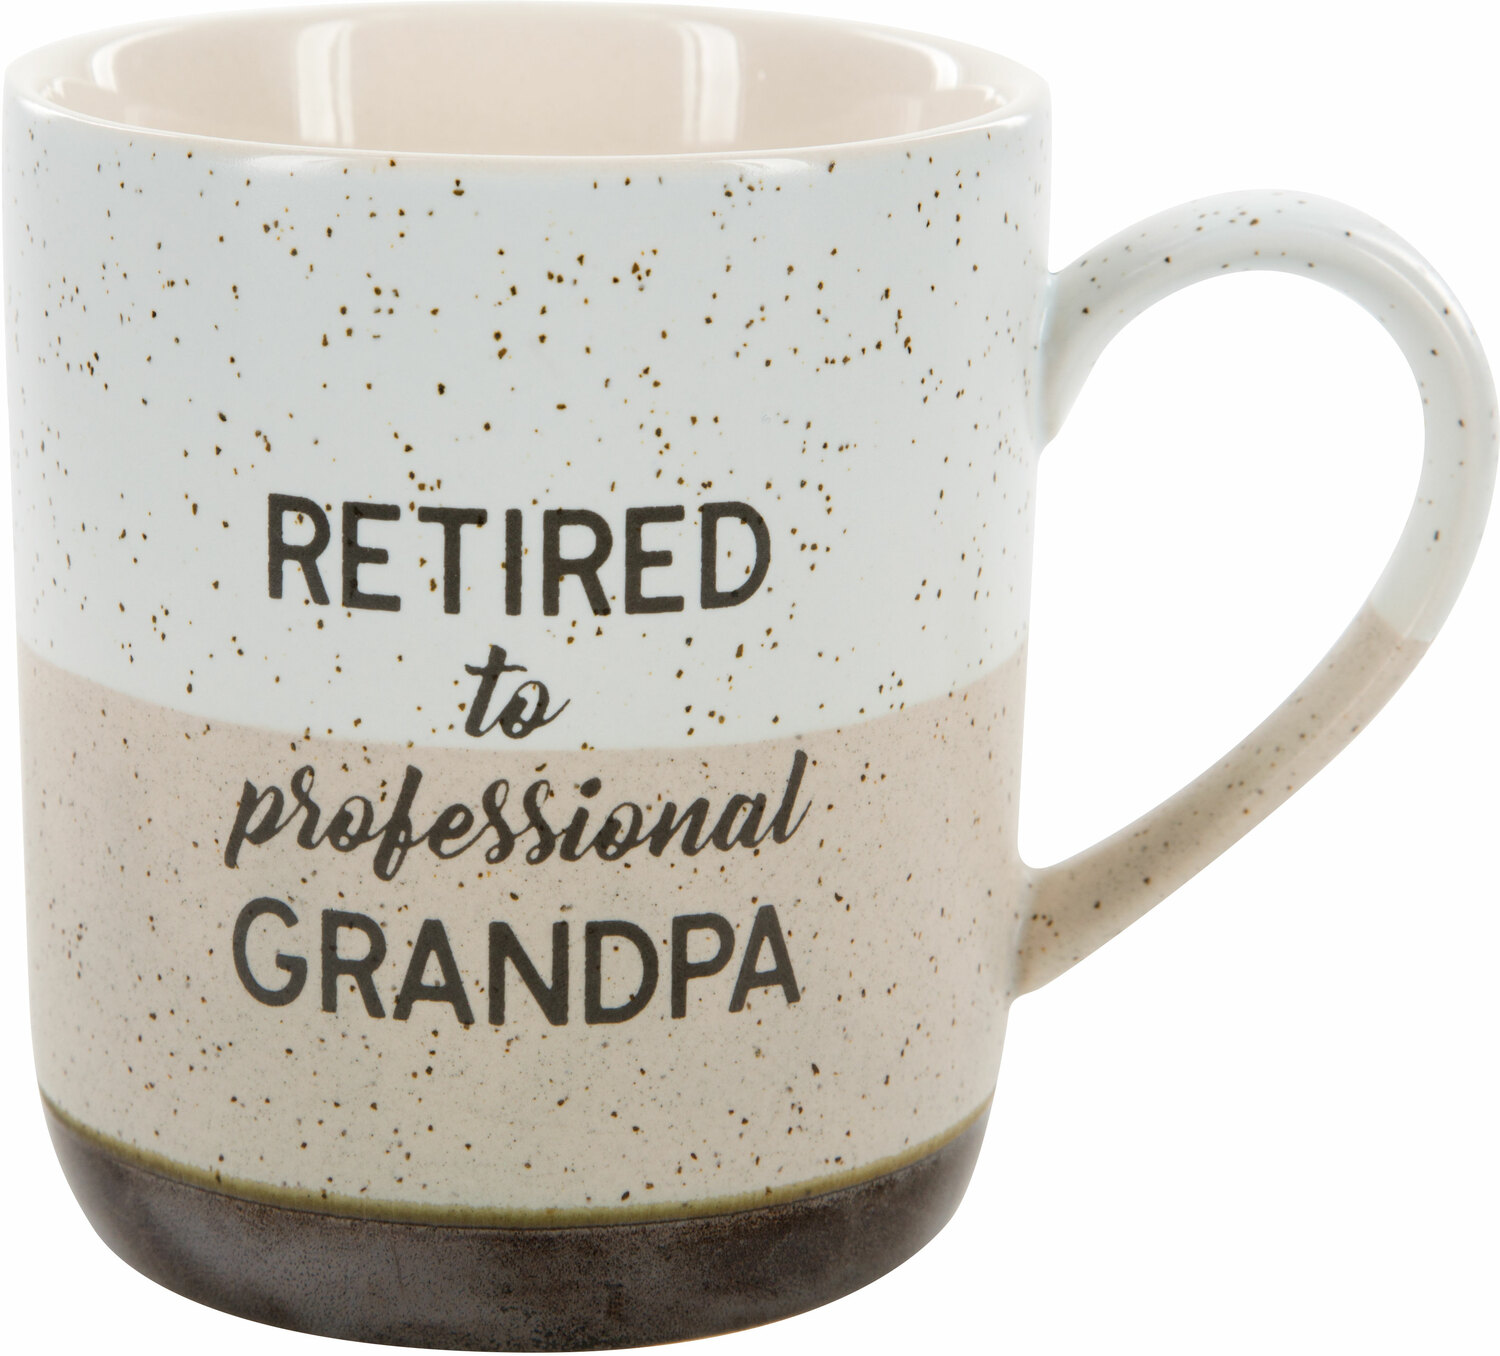 Professional Grandpa by Retired Life - Professional Grandpa - 15 oz. Mug